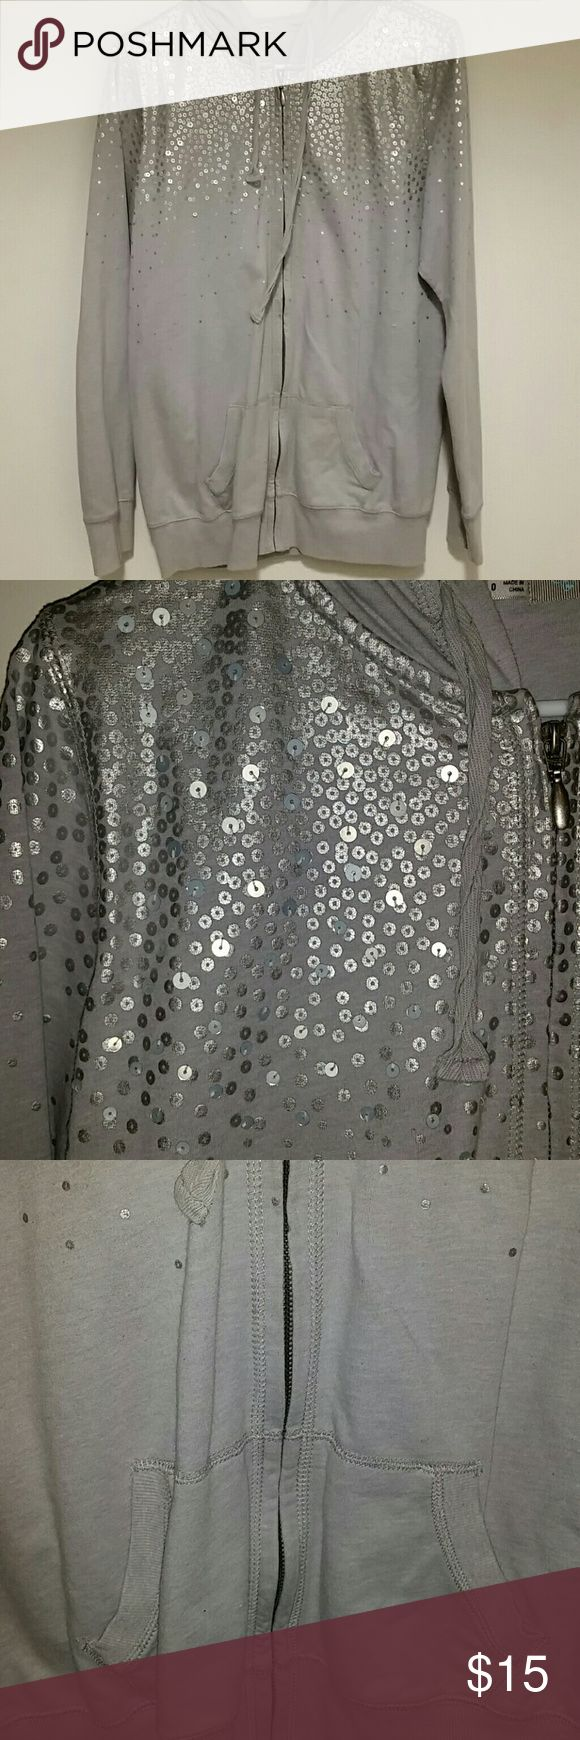 Sequined silver zip up hoodie Sequined silver zip up hoodie.  Sequins are closer together towards the top then spread out towards the bottom.  Full zip up hoodie with front pocket.  Some pilling under the armpit area and regular wear. FUC. Maurices Tops Sweatshirts & Hoodies